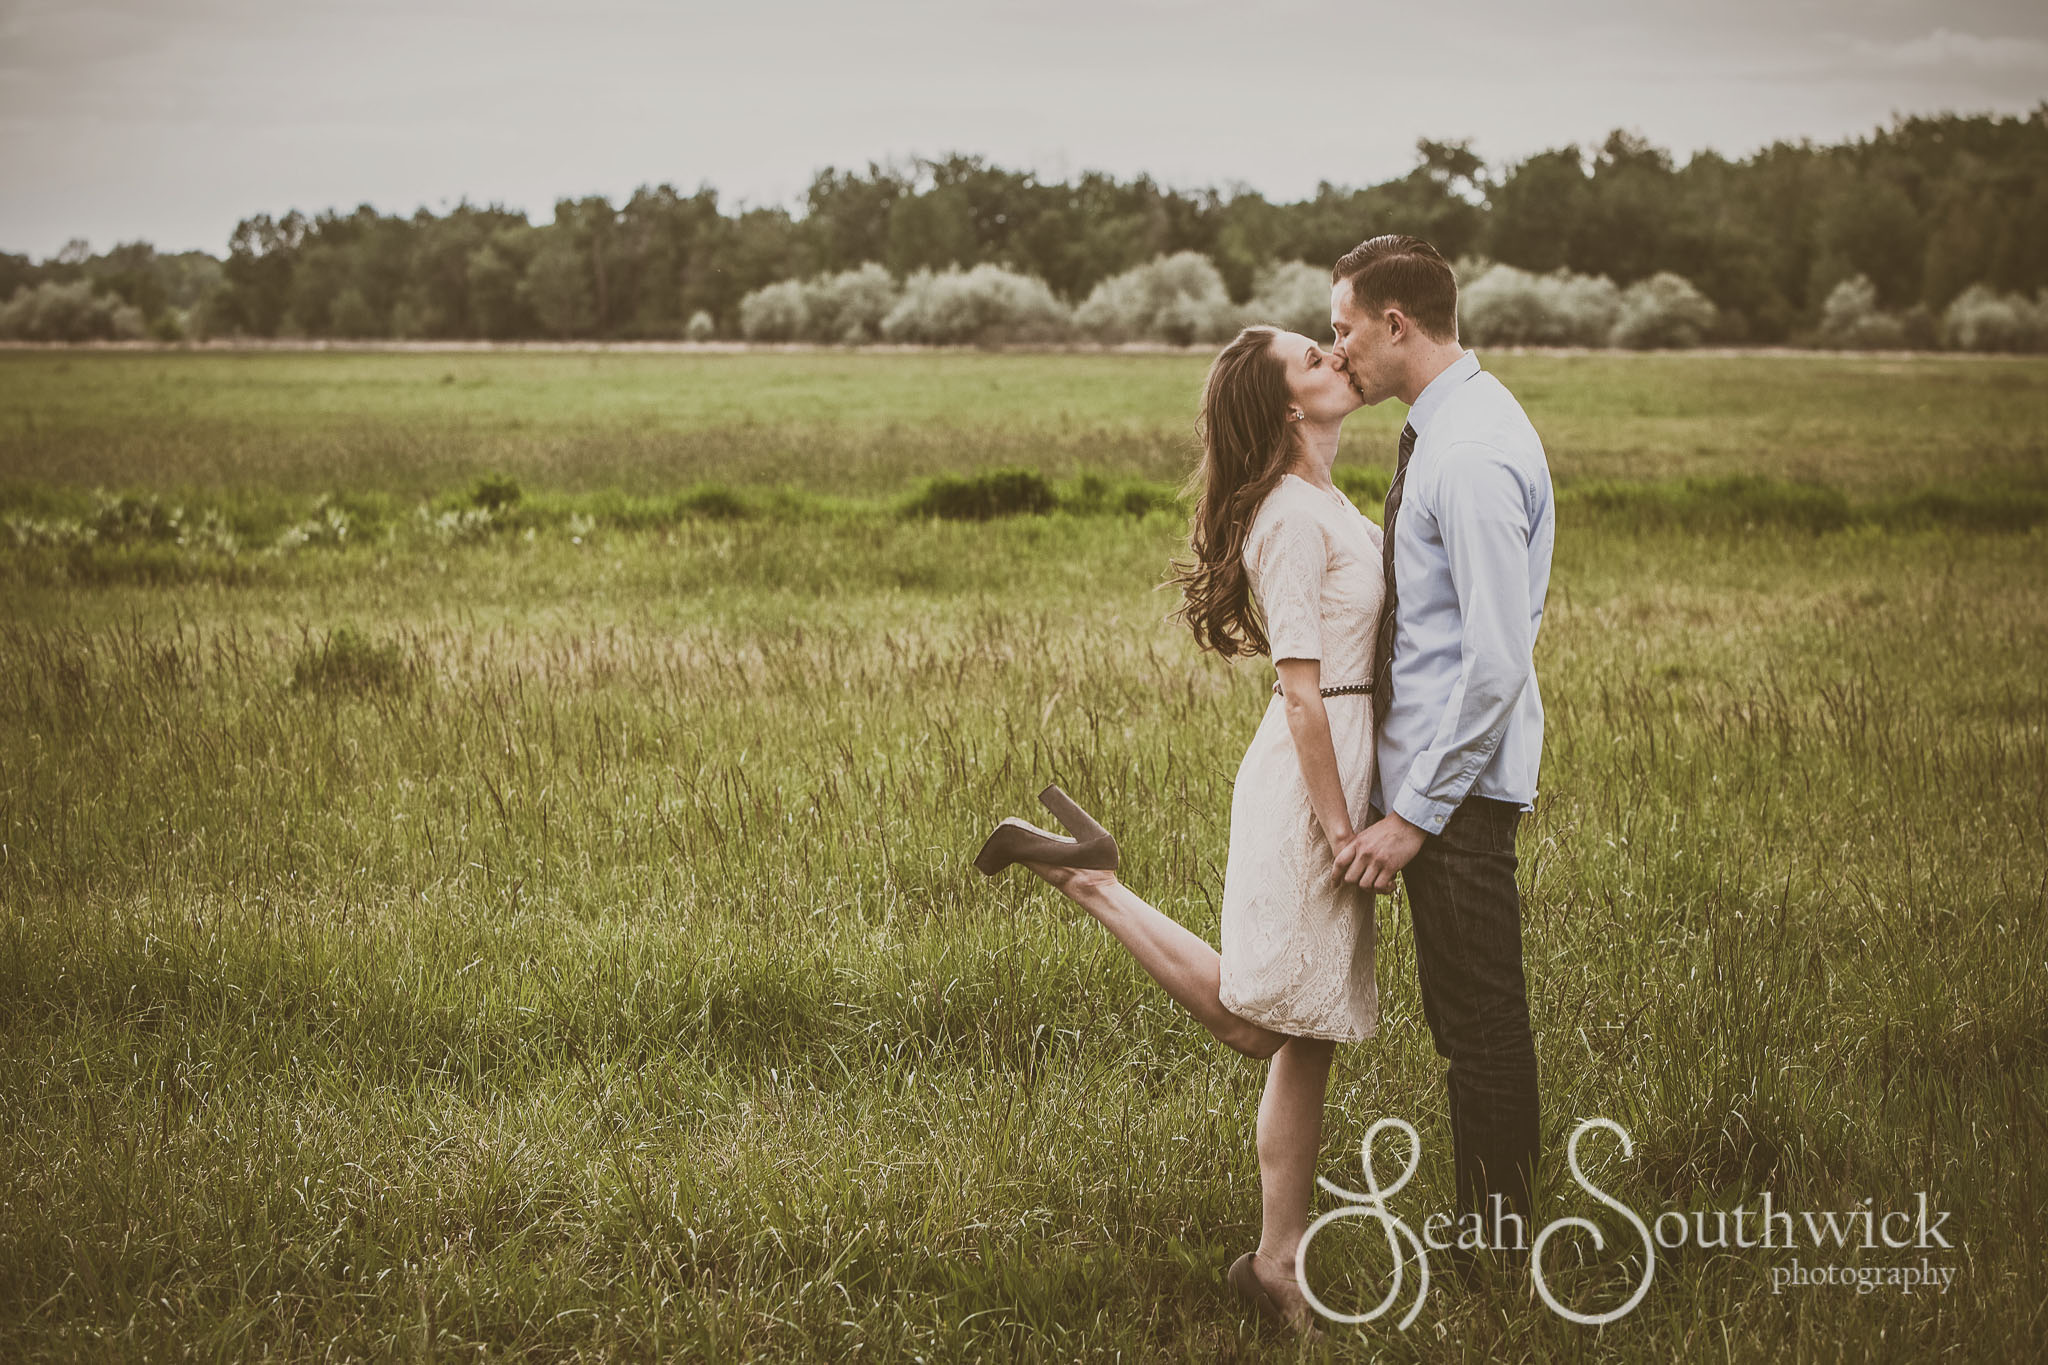 Engagement Photography Leah Southwick Photography-4.jpg